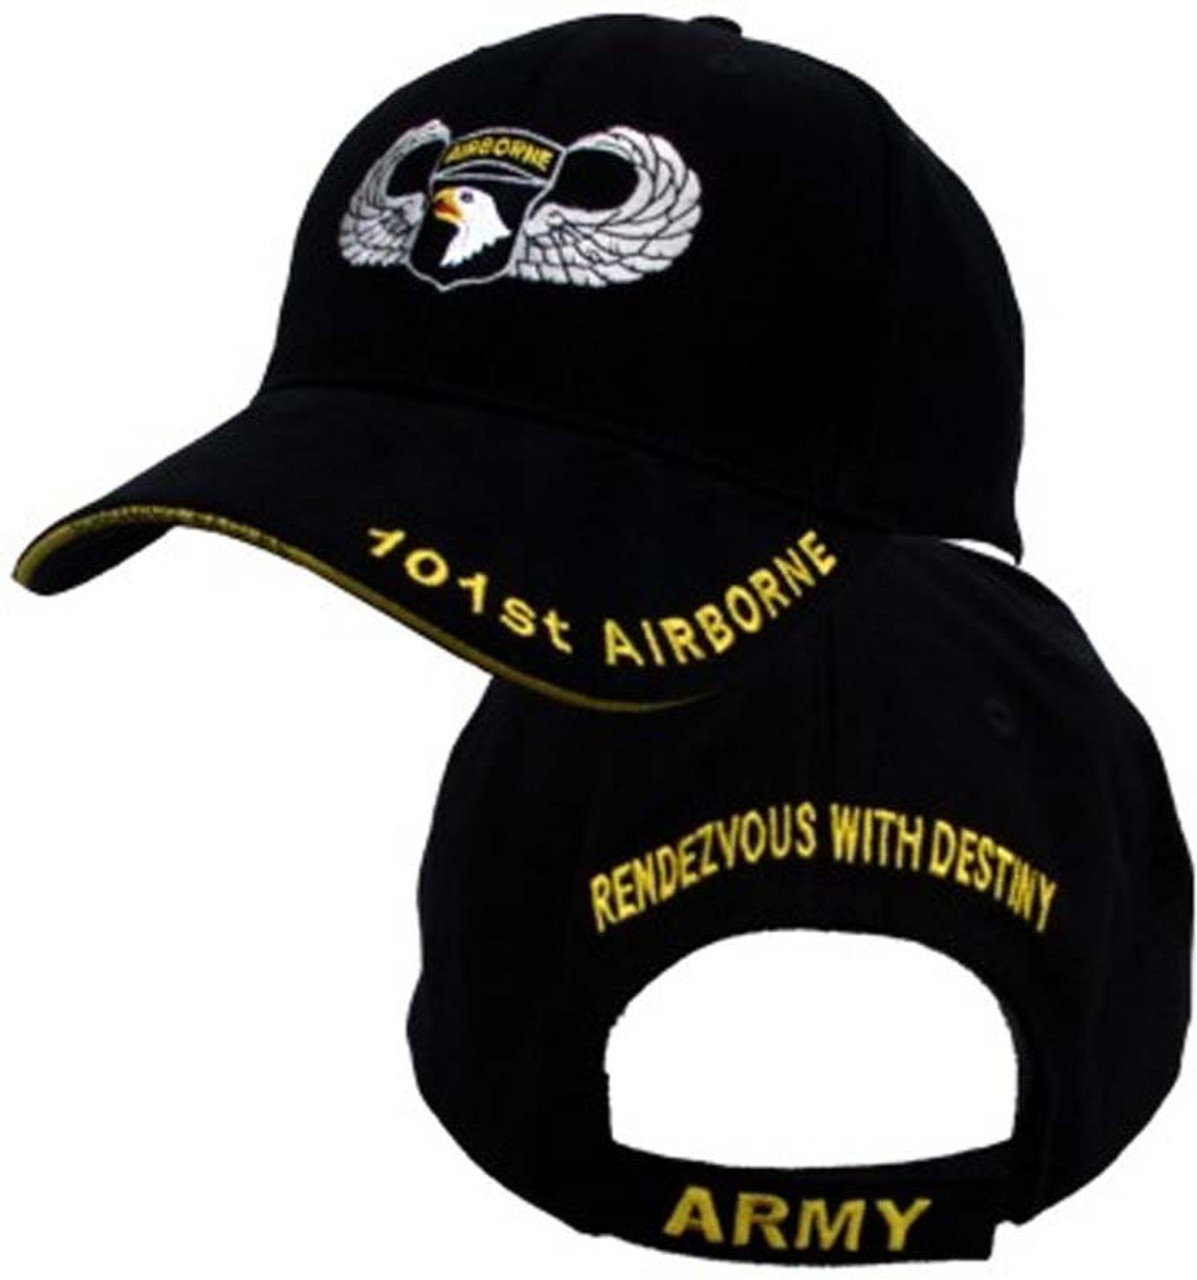 101st Airborne Insignia Hat - U.S. Army Officially Licensed Military Hat  Baseball Cap 7fb5d858506